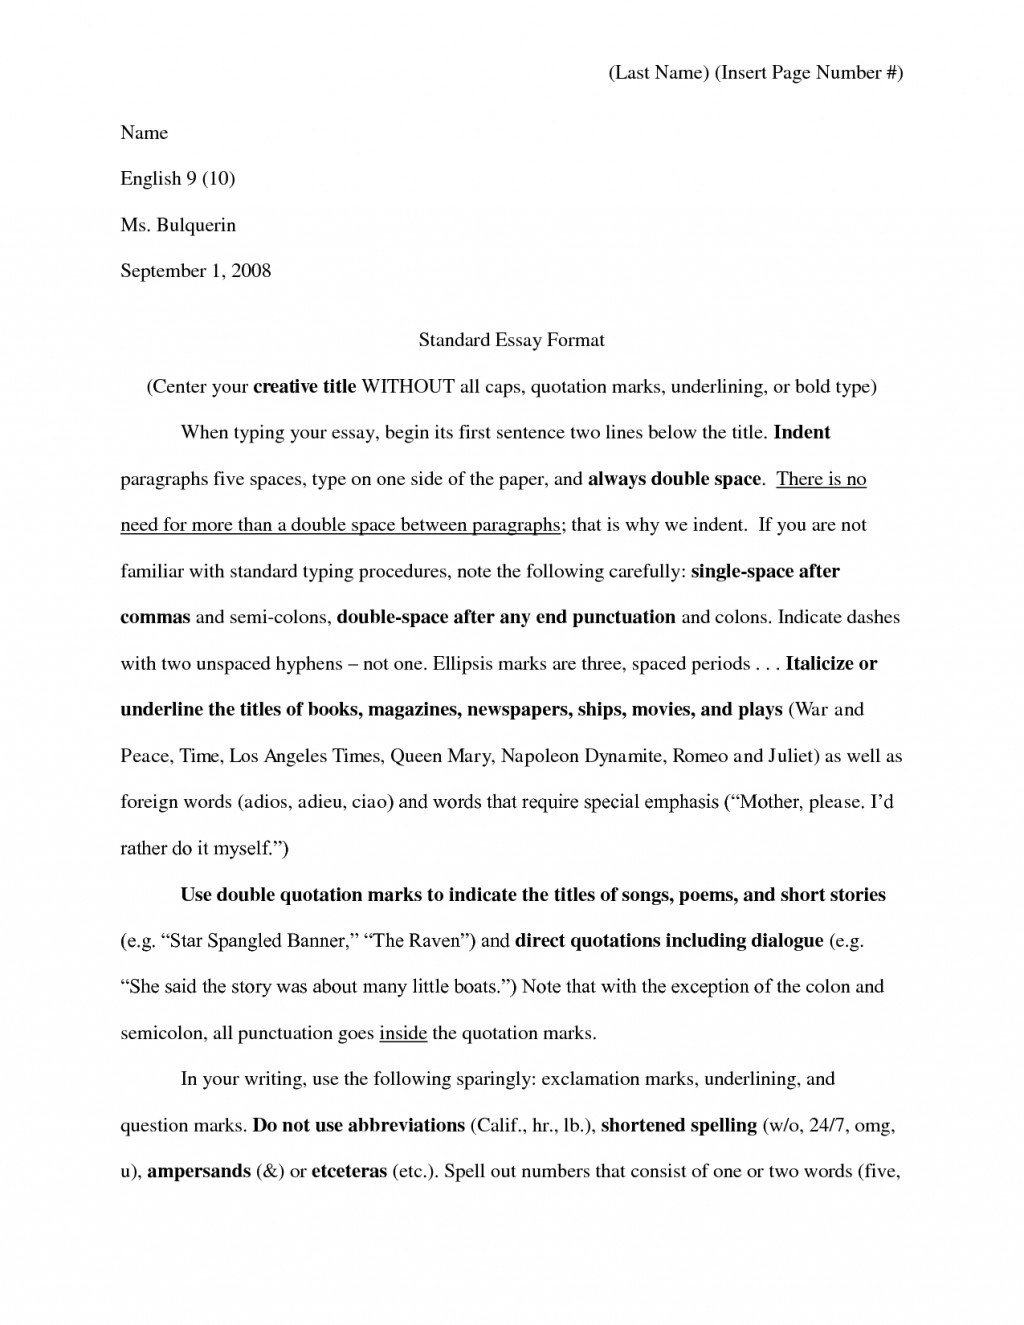 004 Standard Essay Format Example Impressive Apa Essay/report Writing For Ielts Large